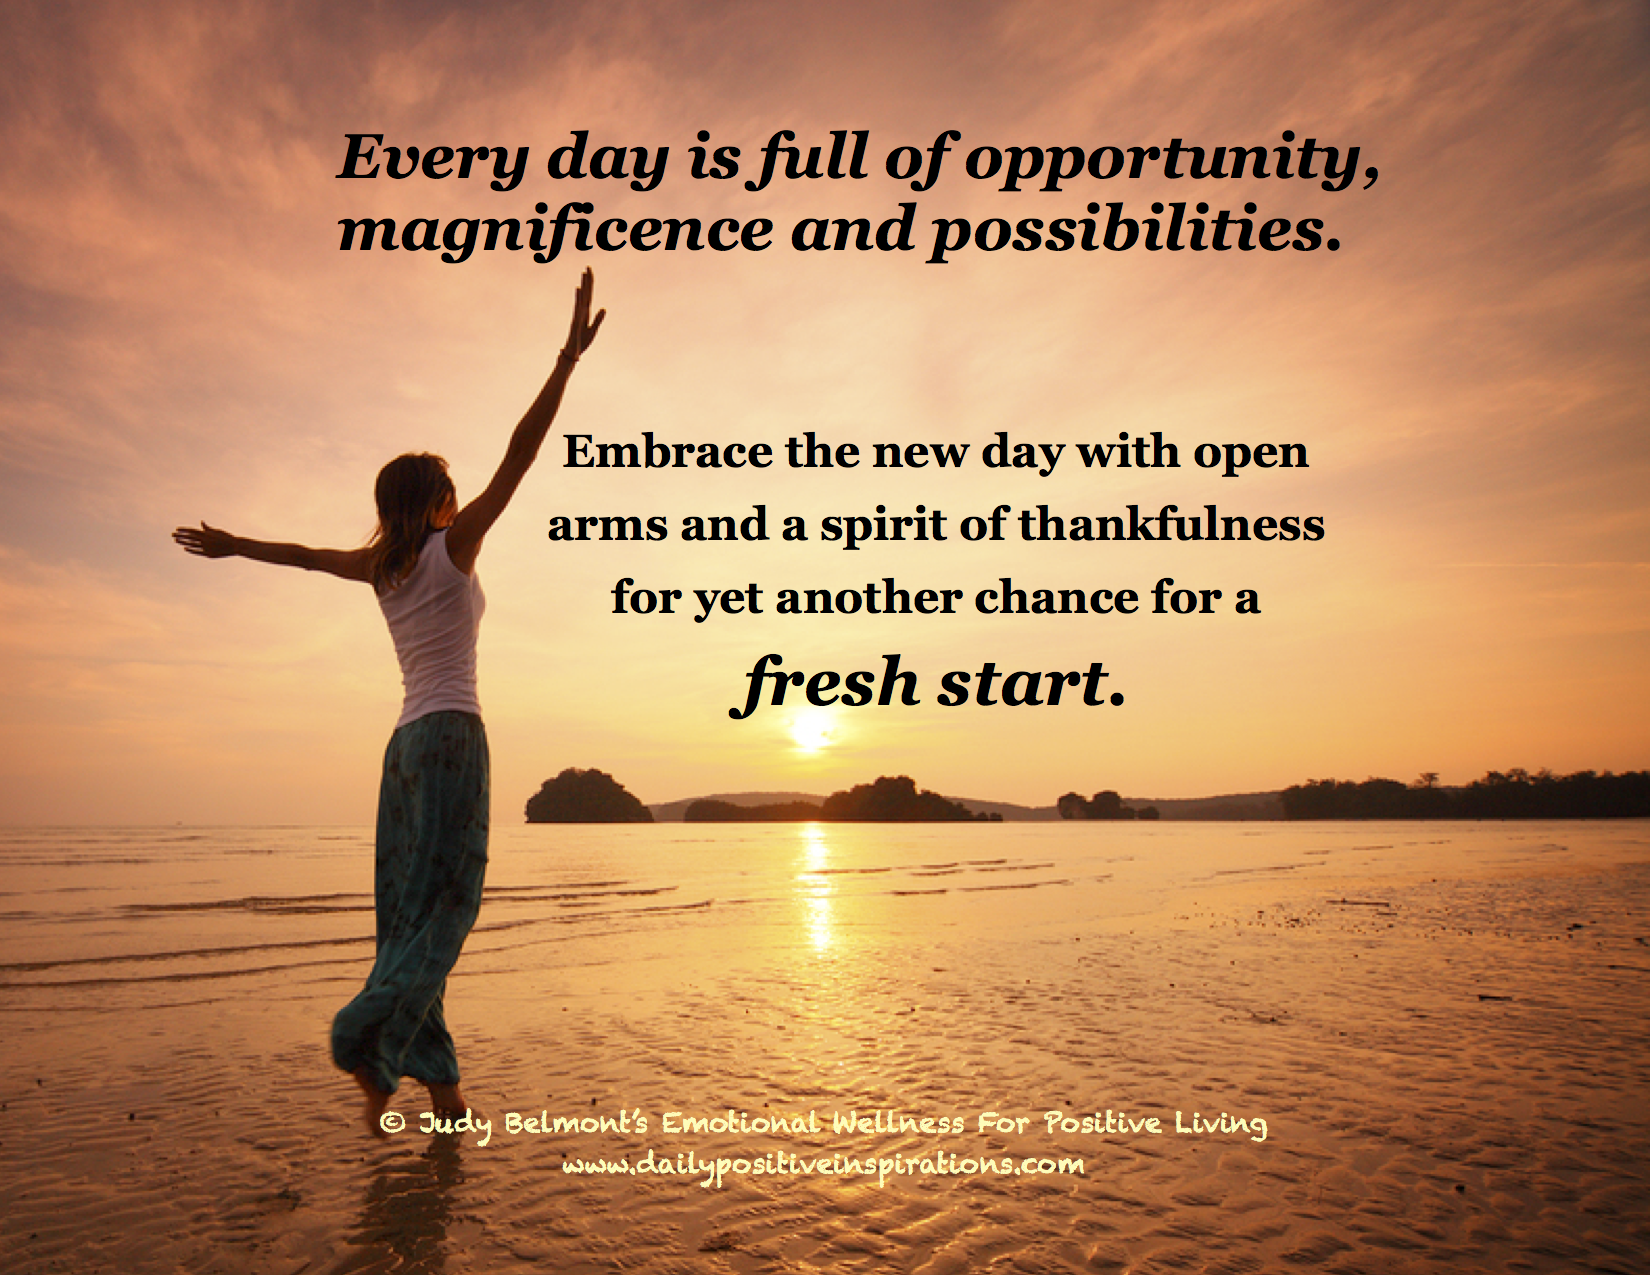 Every day is a fresh start! For more Daily Positive ...